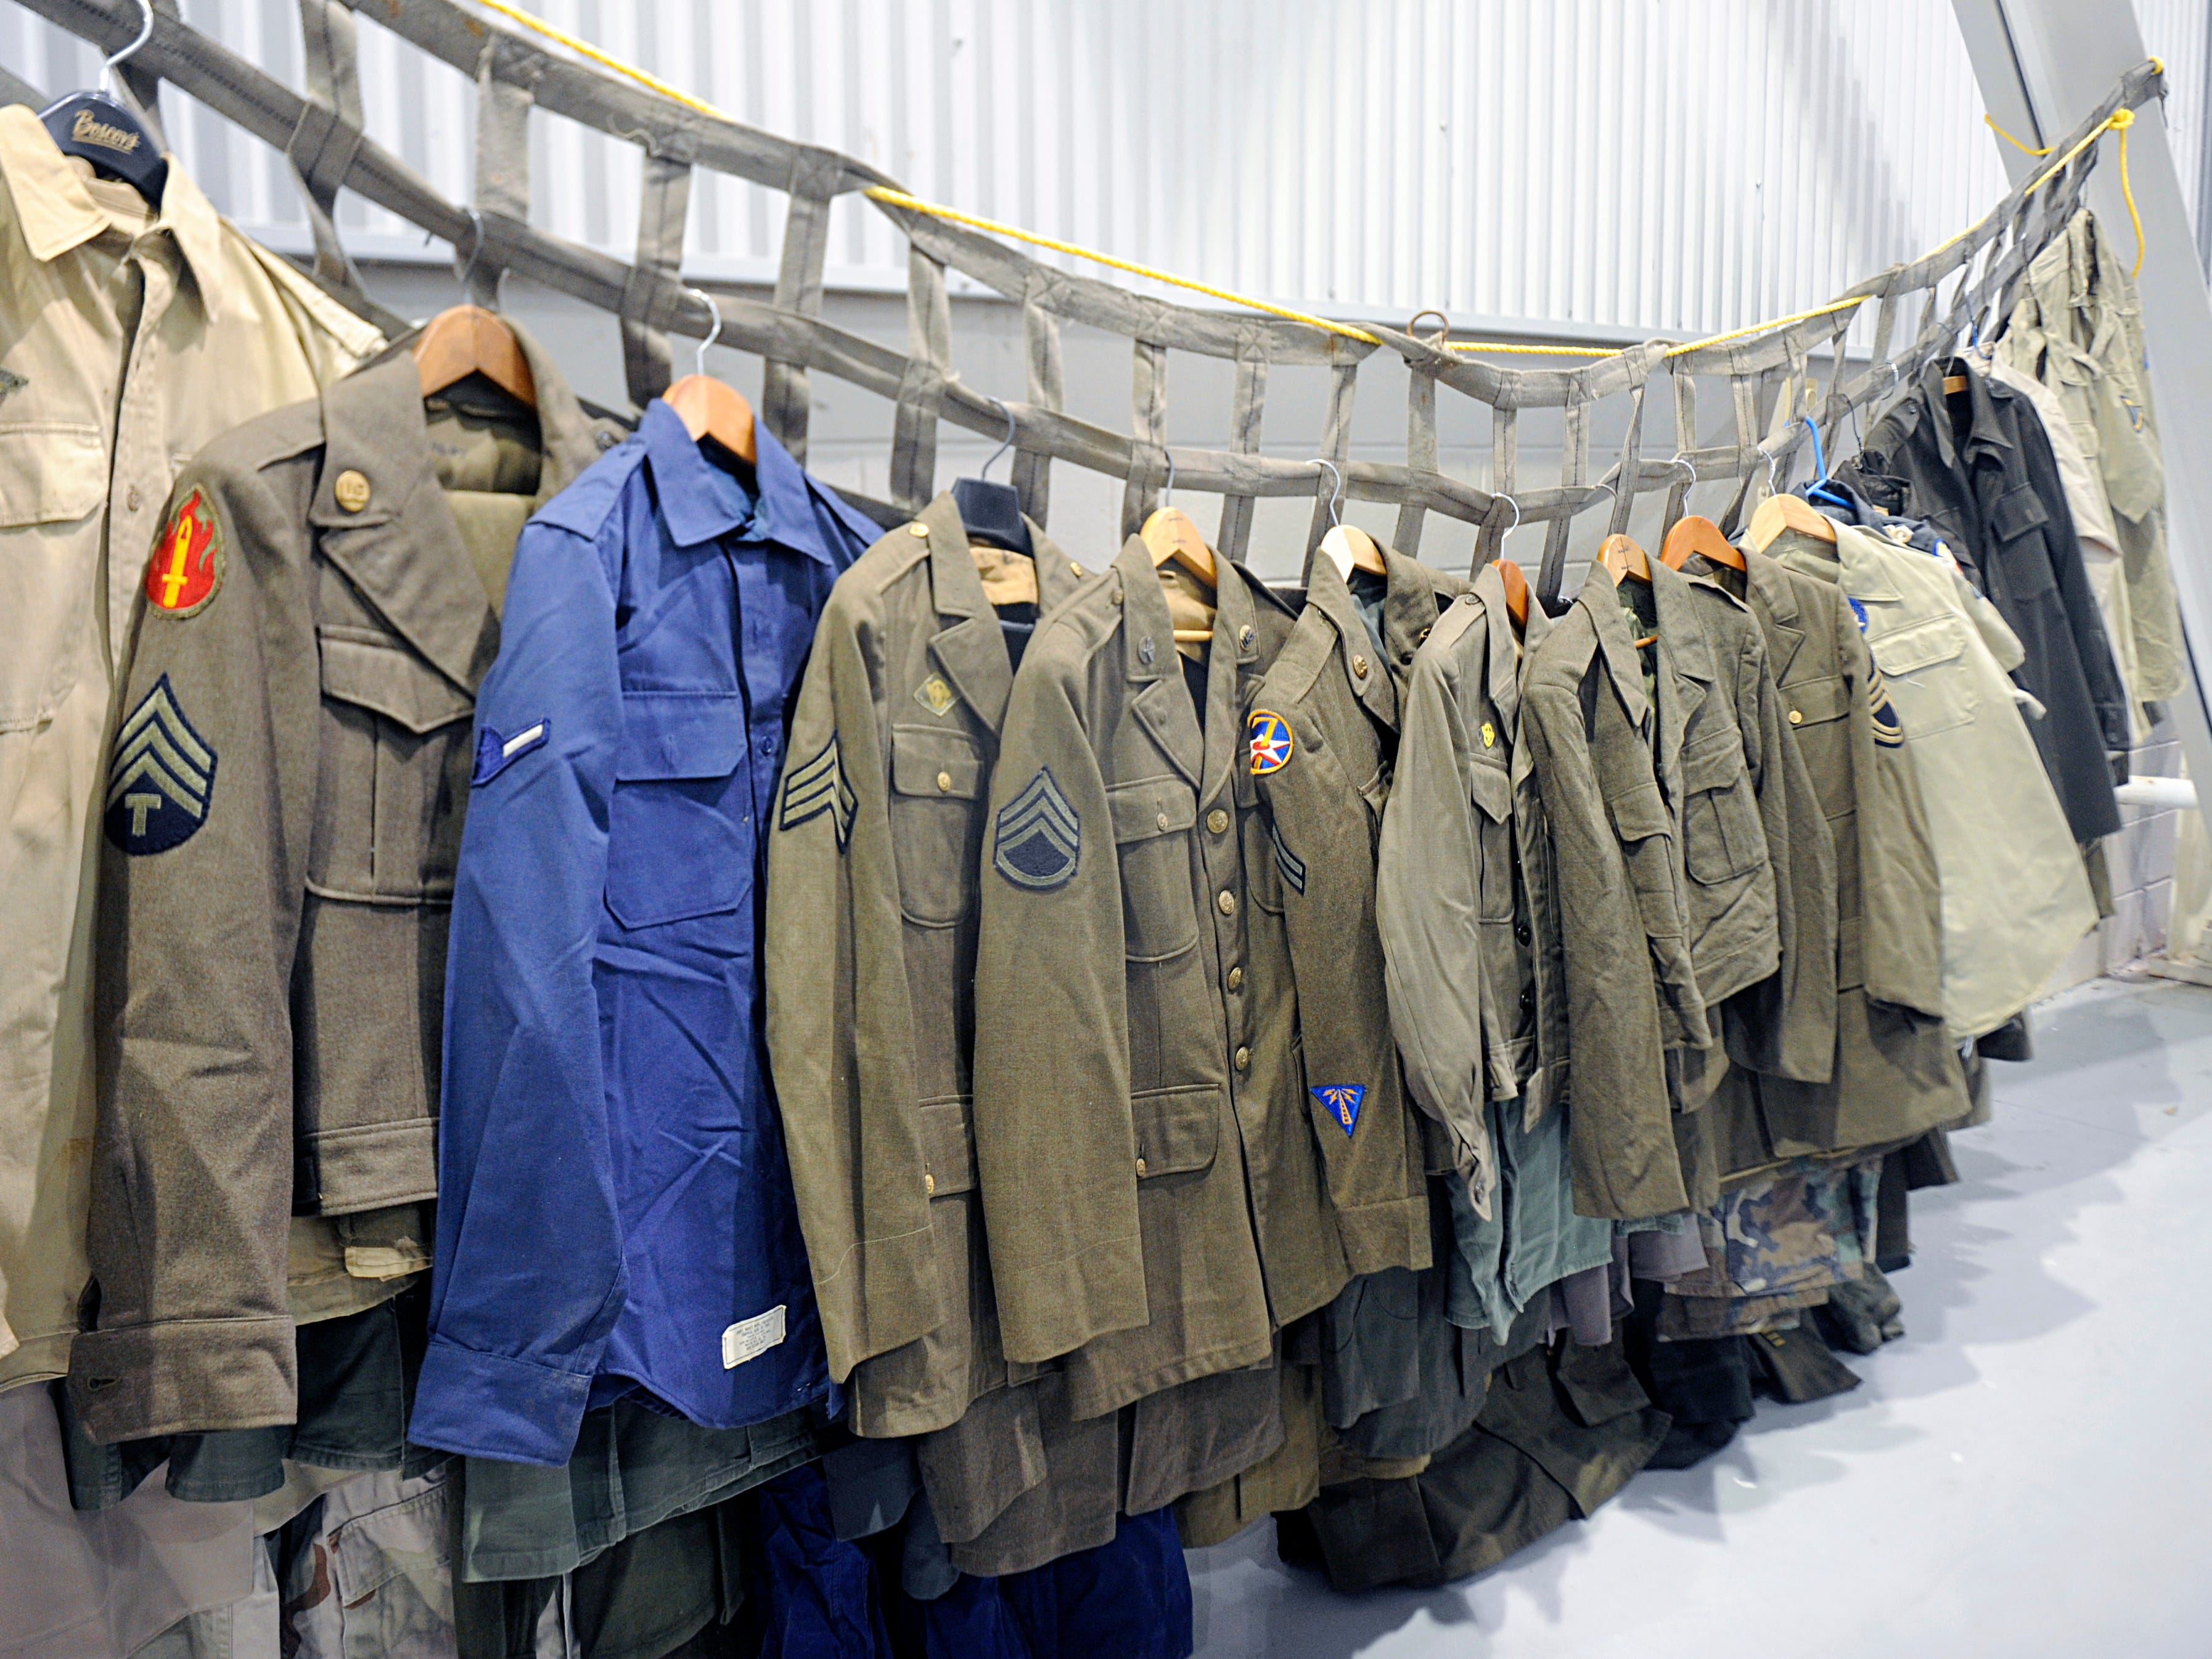 PHOTOS: Military antiques up for auction at Millville Airport